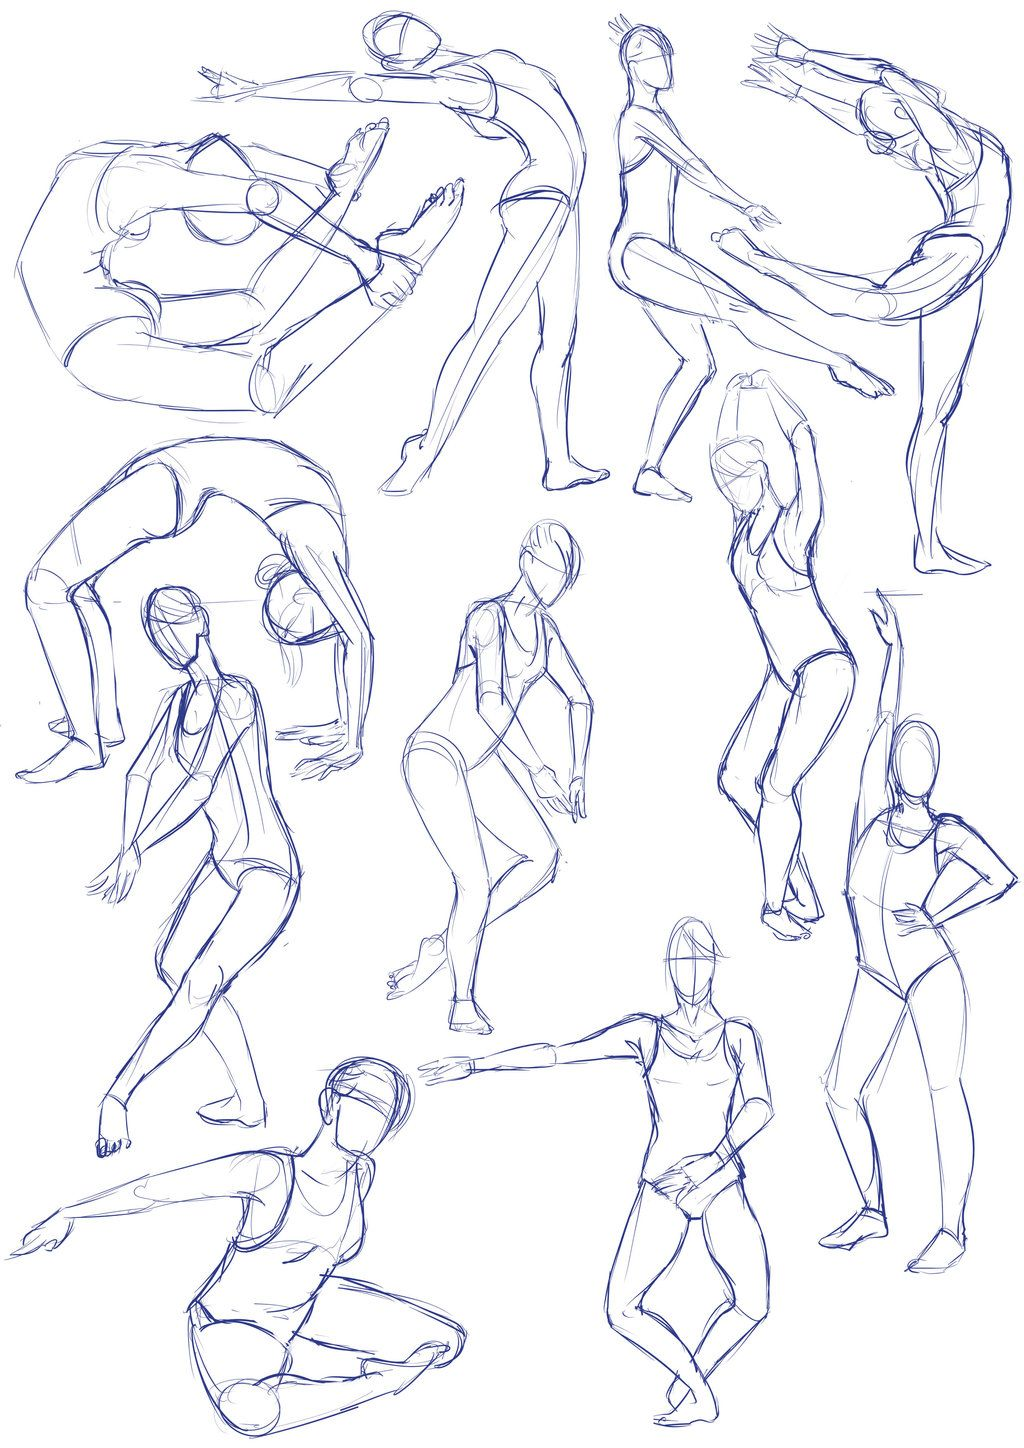 Photo of Balet sketches by SajoPhoe on DeviantArt